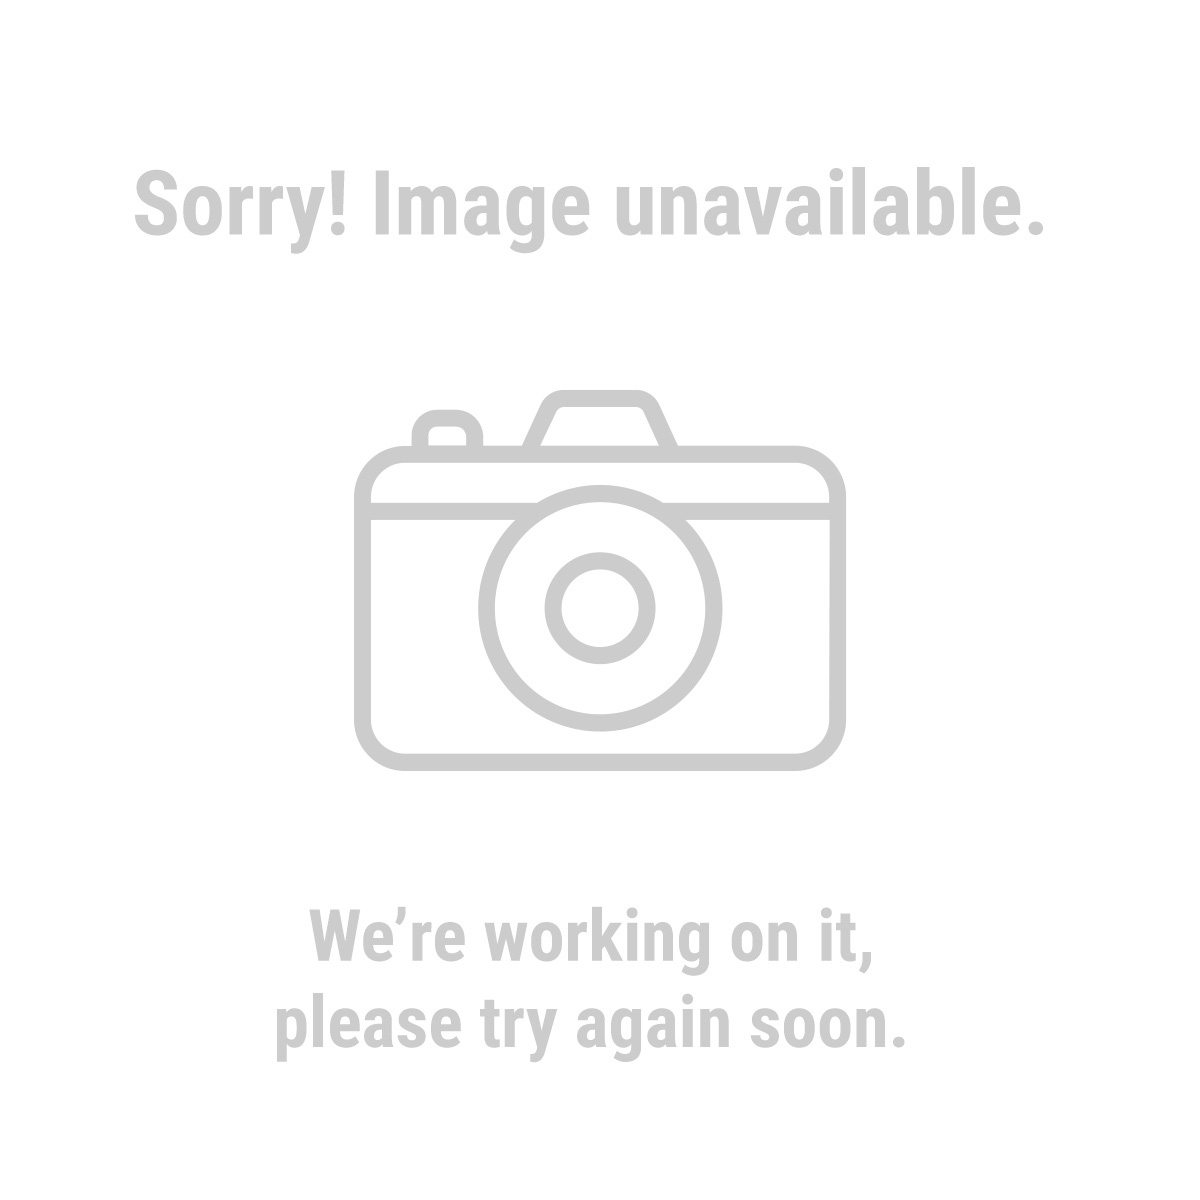 Duty Booster Cables 69294